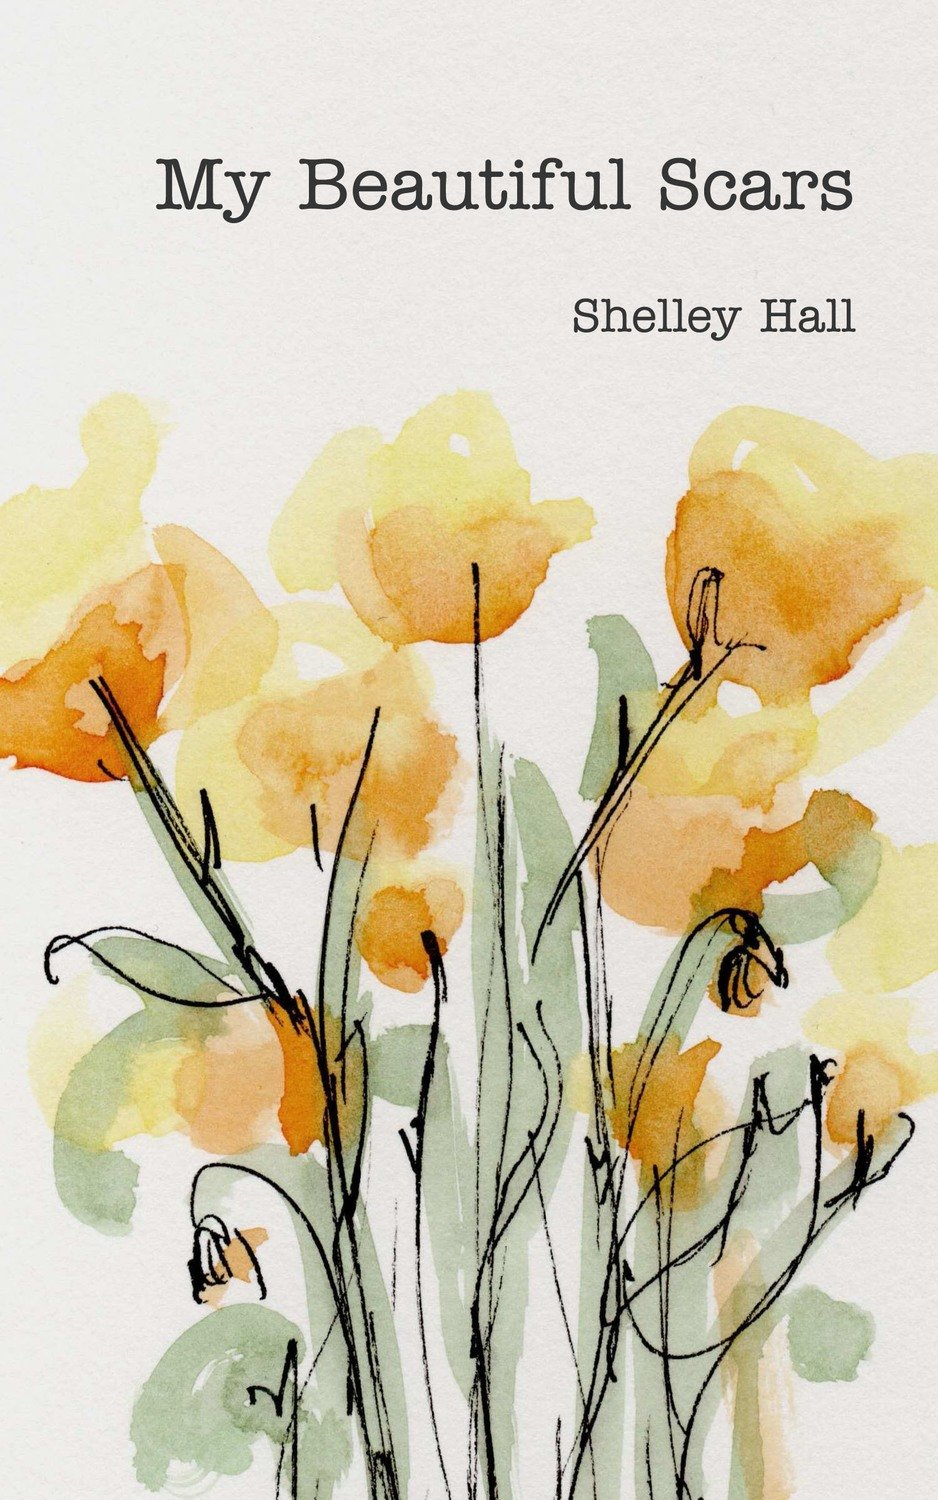 My Beautiful Scars - Shelley Hall